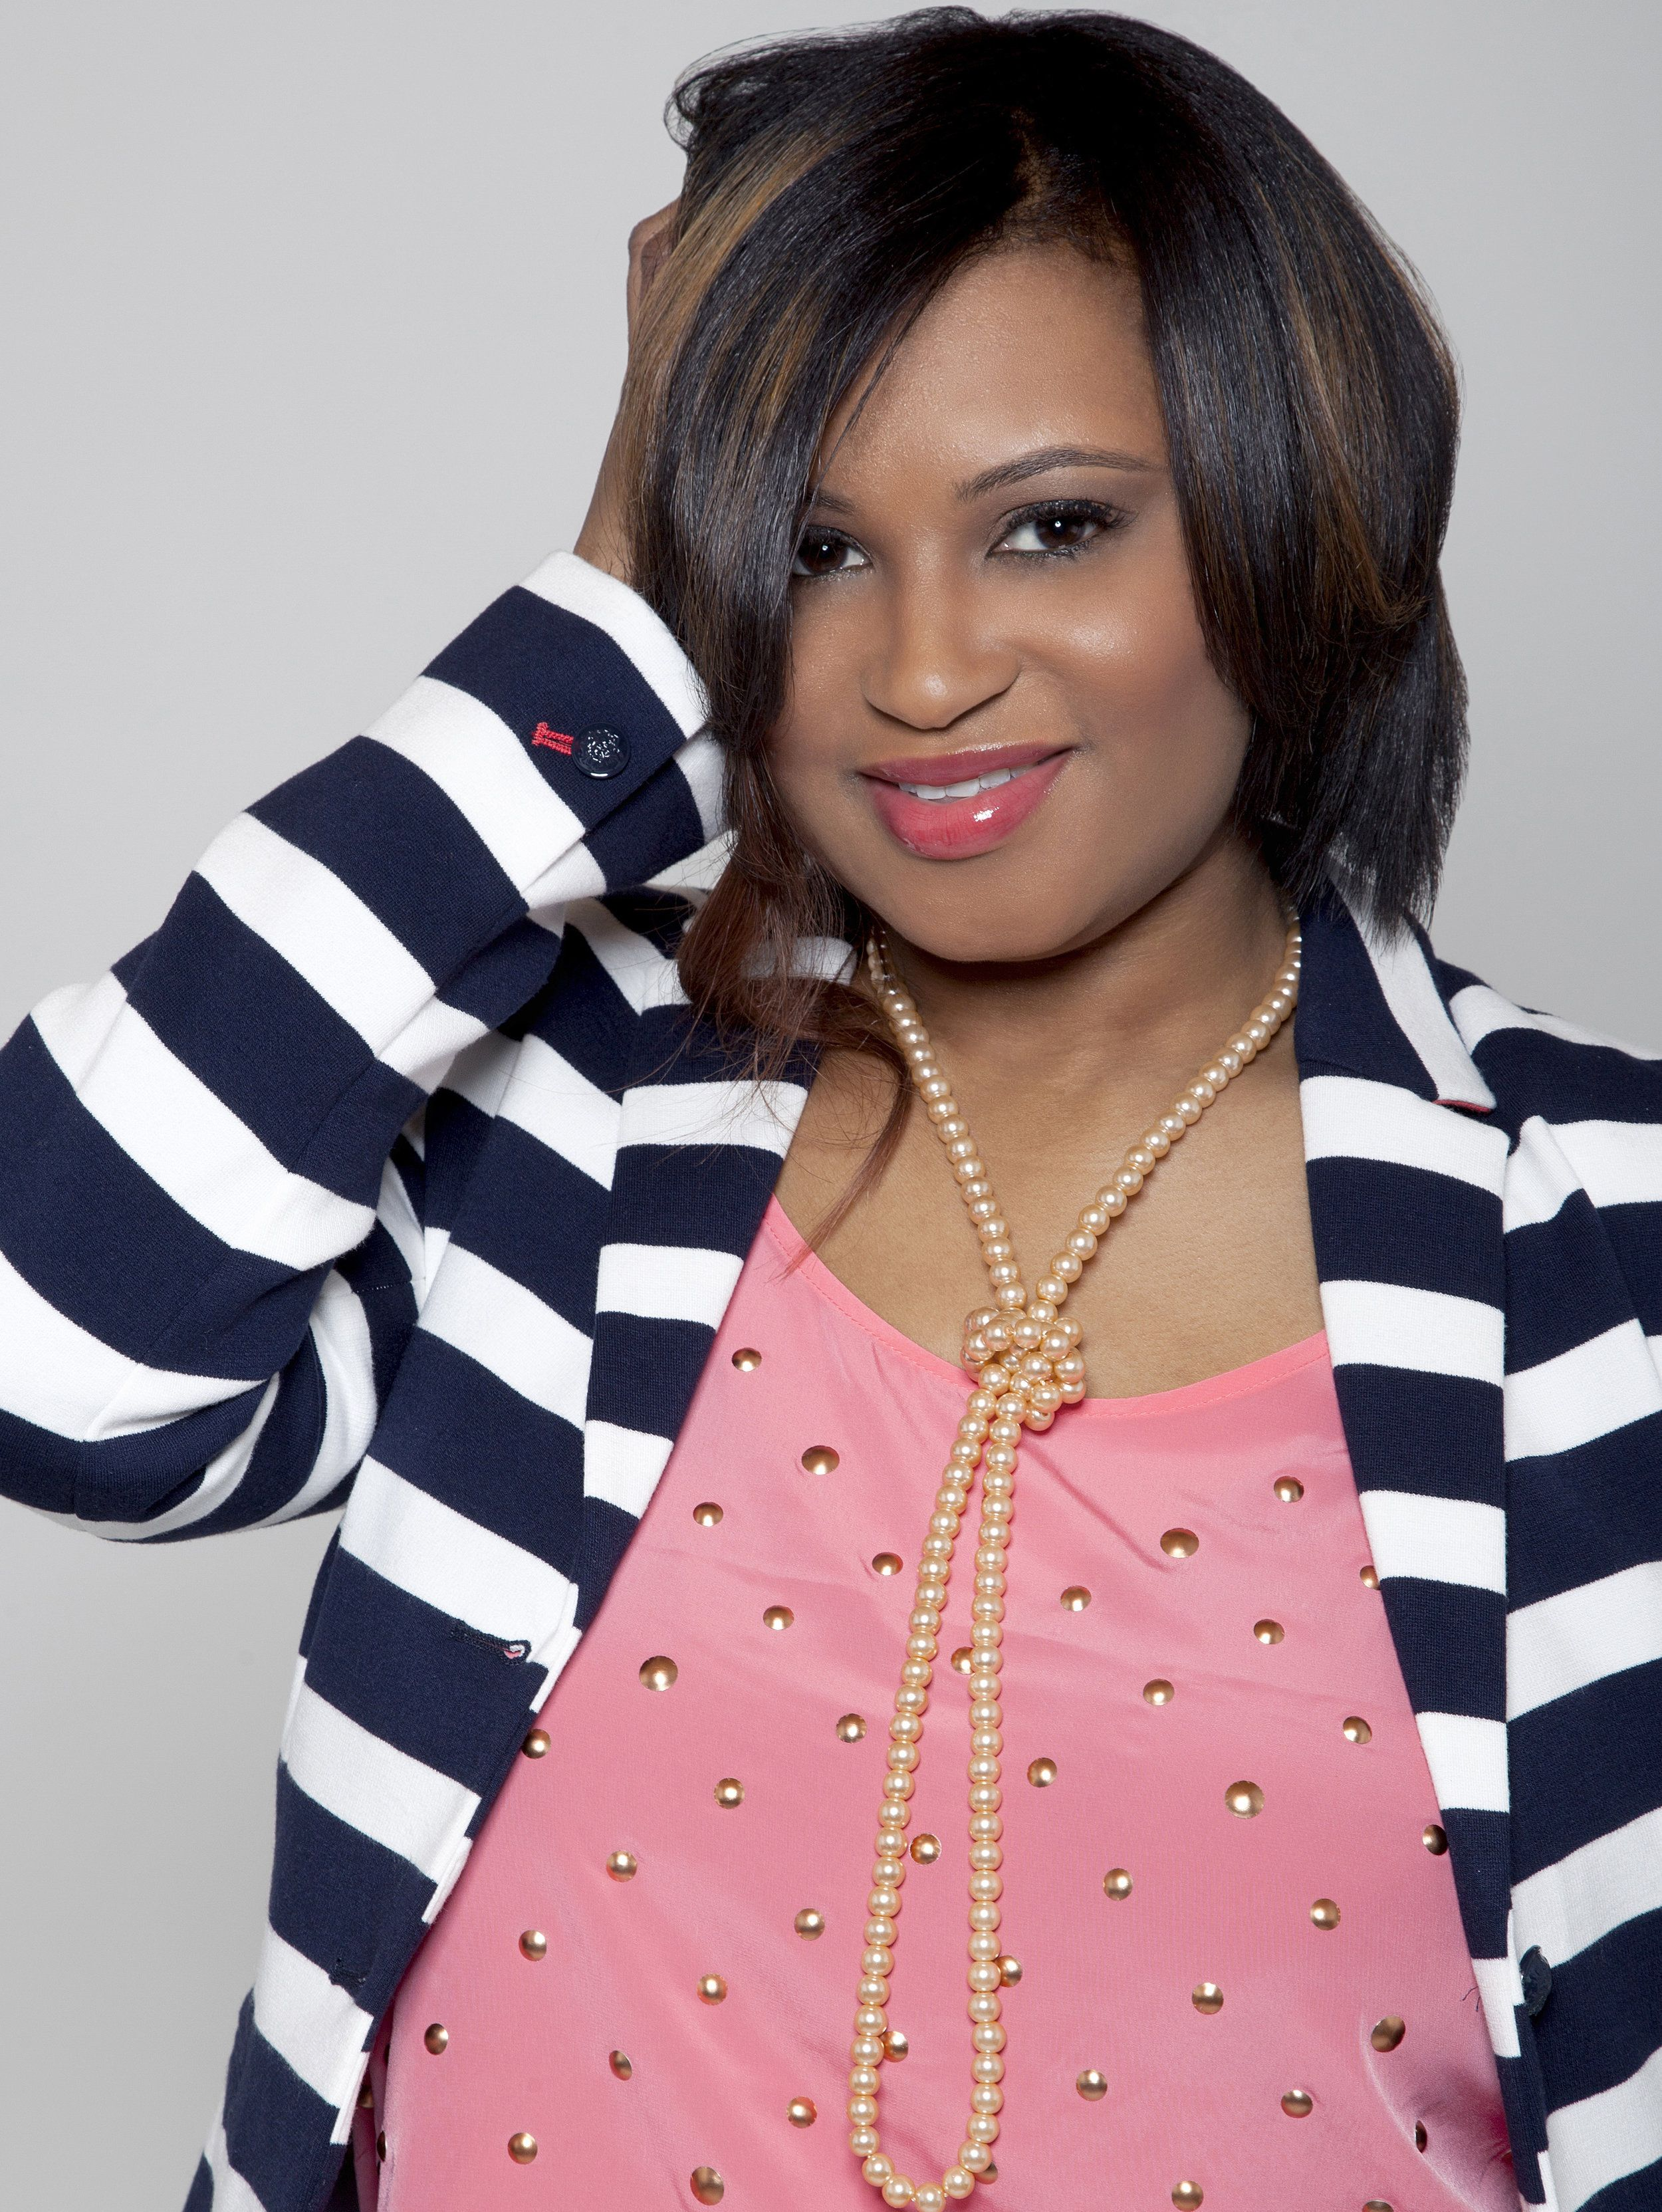 Interview Latoya Benson Shares Her Powerful Story On Ministry Business And Redefining Herself Motherhood Interviewswithjasmine Divorce